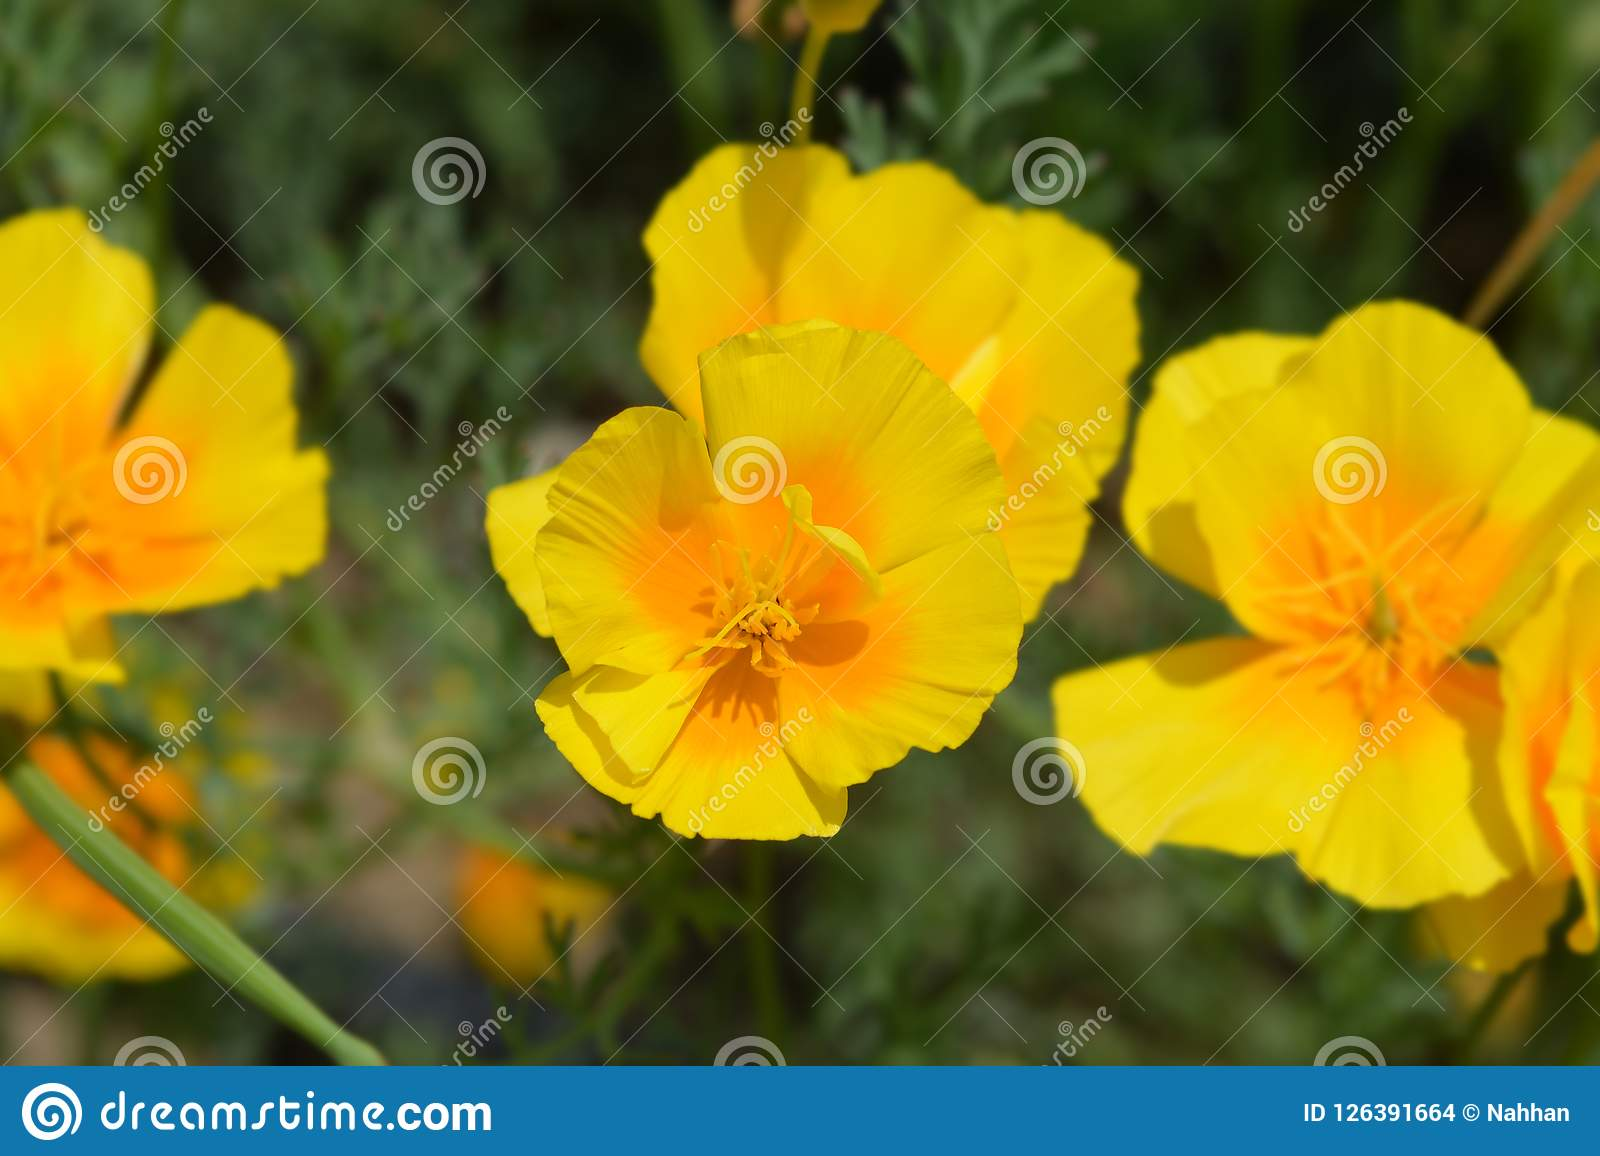 Golden Poppy Flower Stock Photo Image Of Poppy Flower 126391664